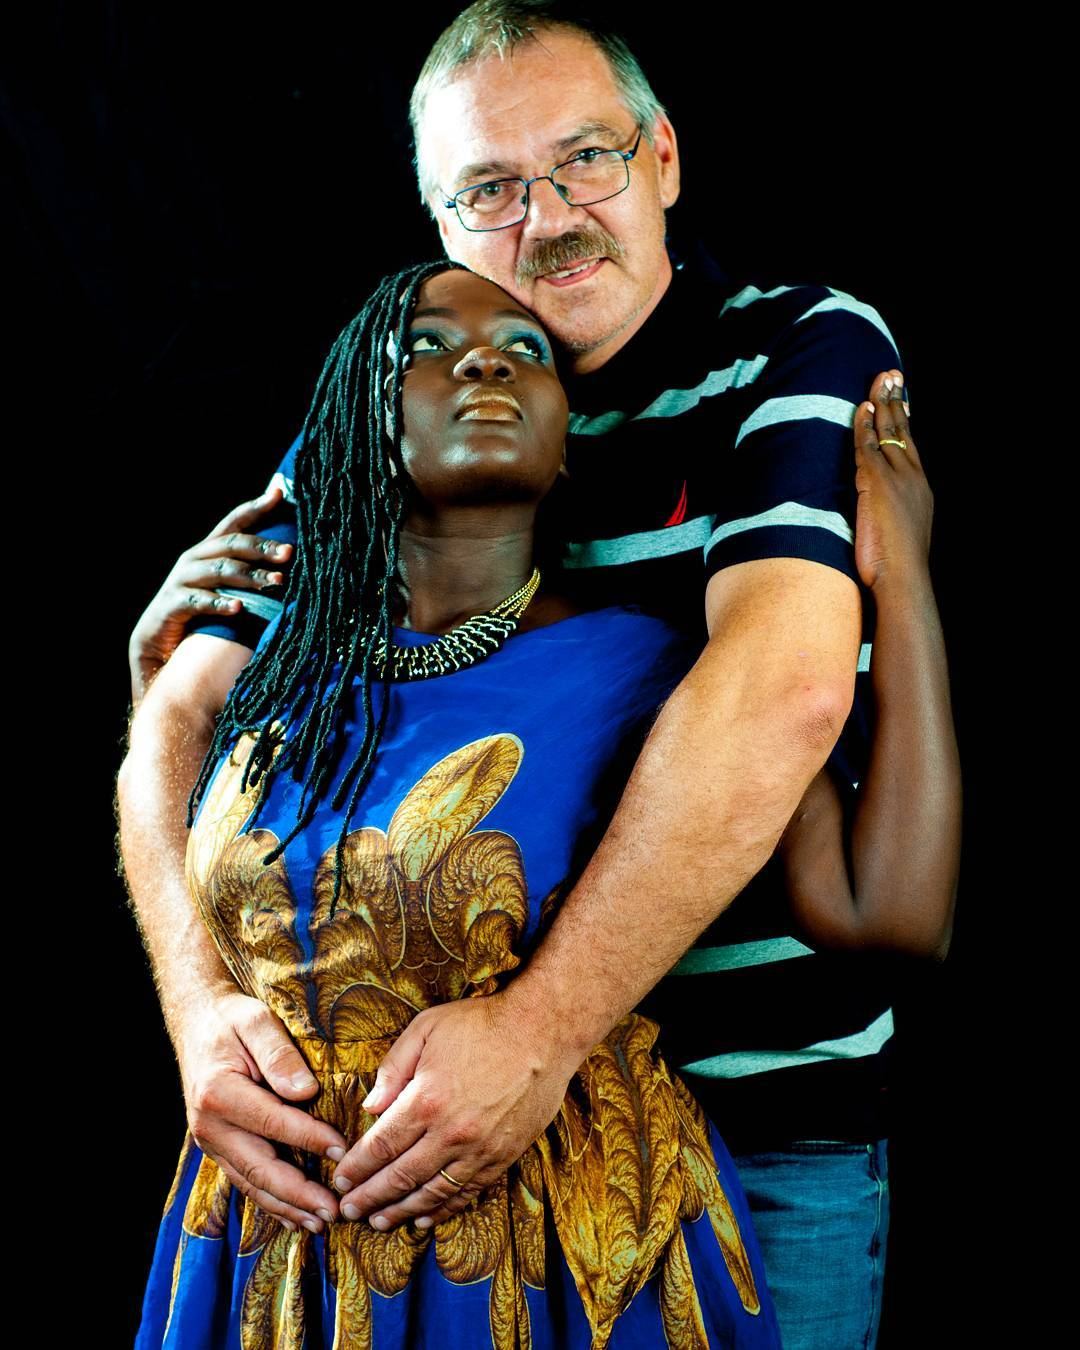 Nyota Ndogo and Henning Nielsen excepting their first child together